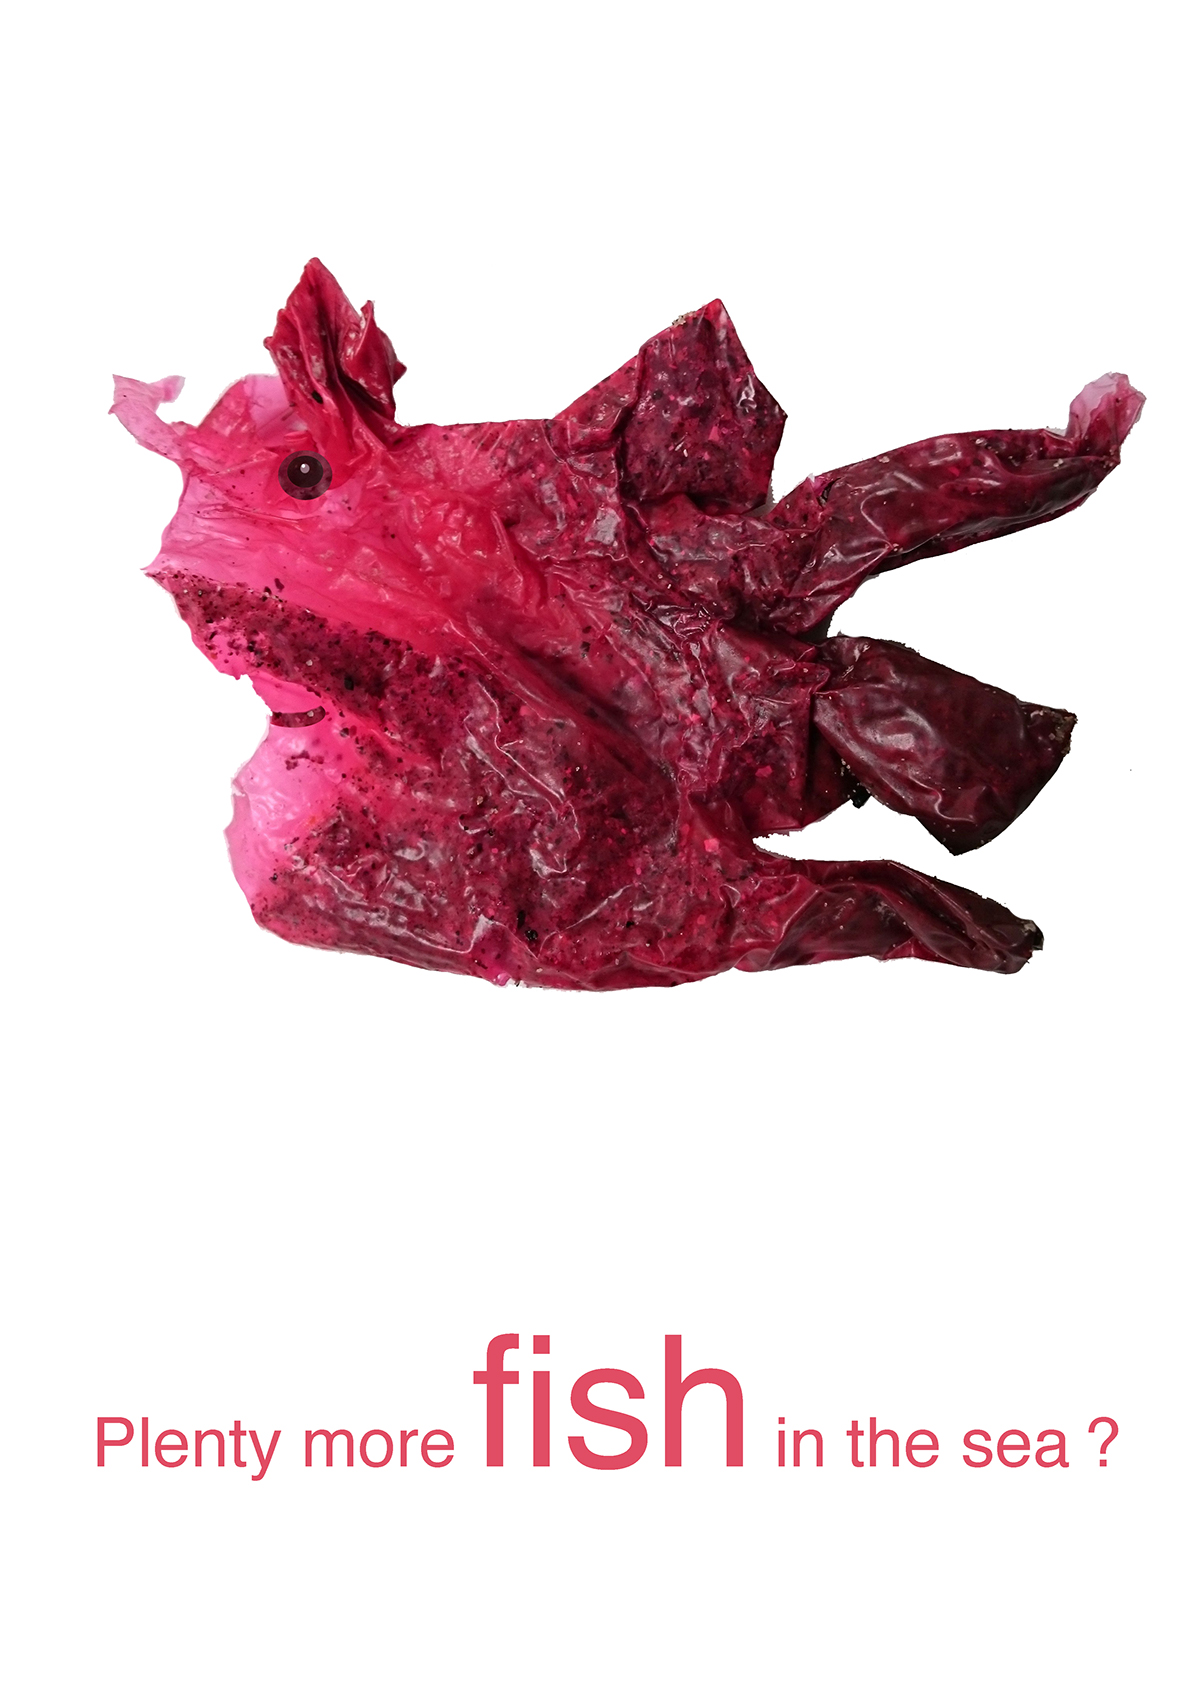 Plenty more fish in the sea gloves on behance for More fish in the sea